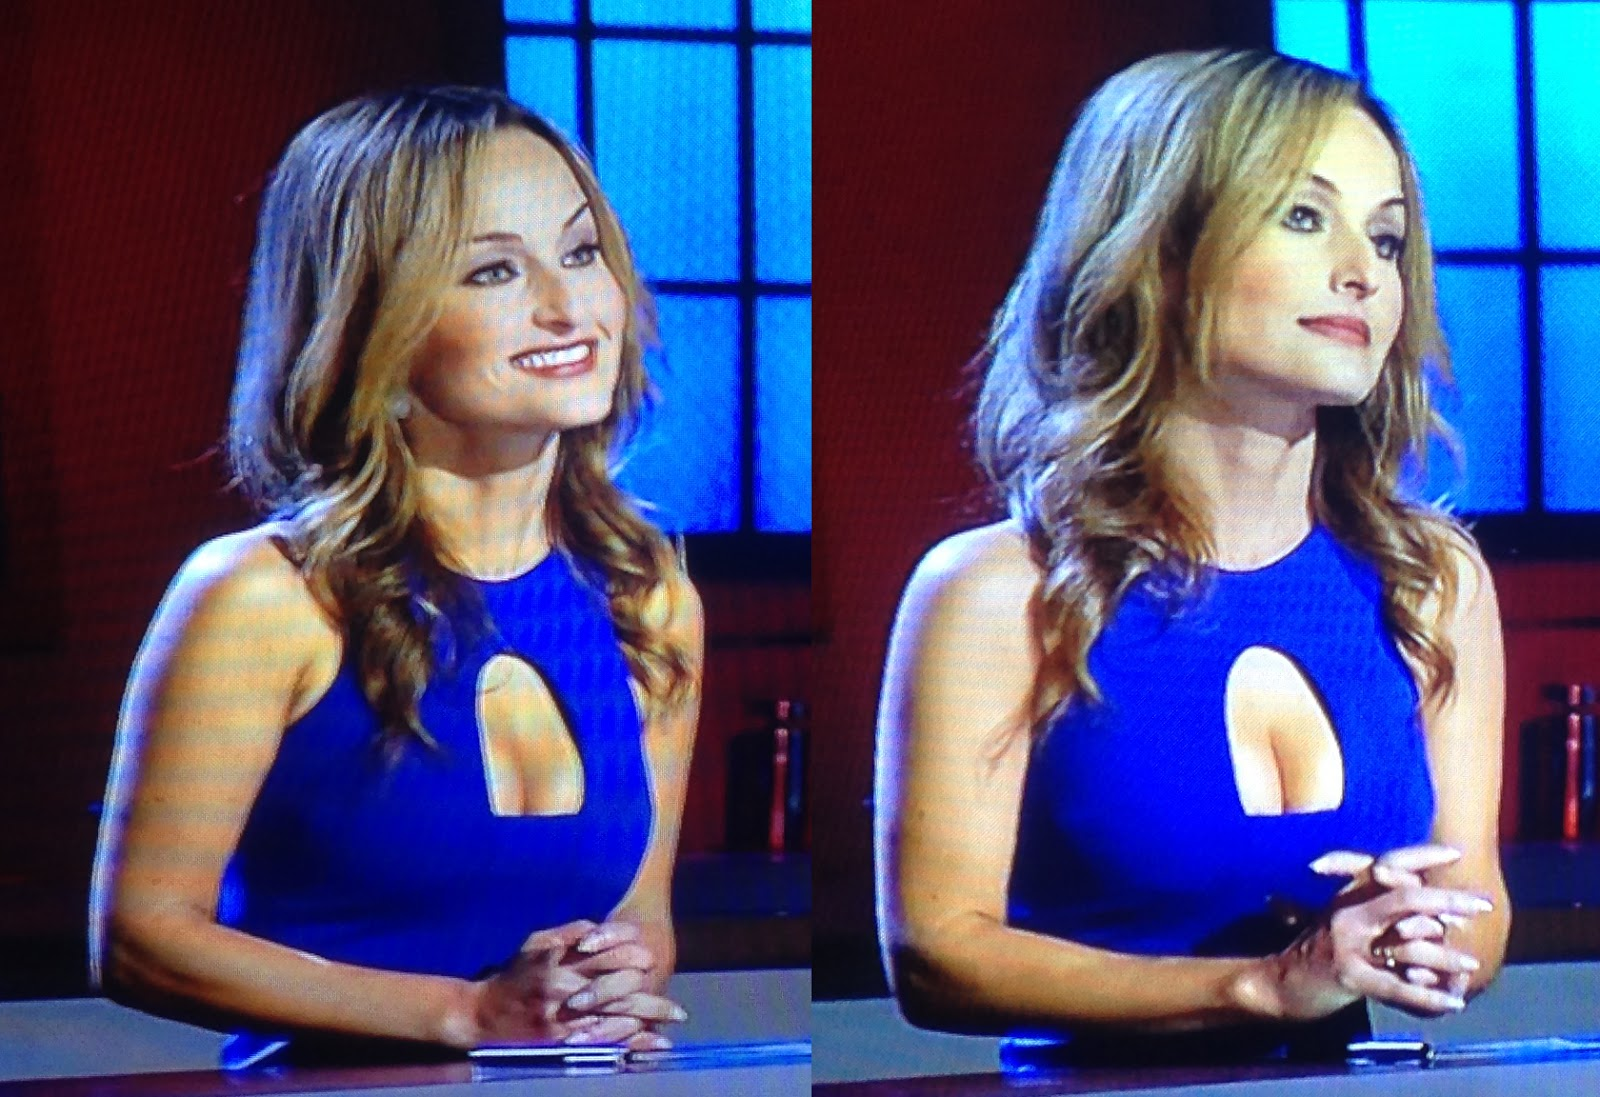 Pictures Of Giada De Laurentiis Tits